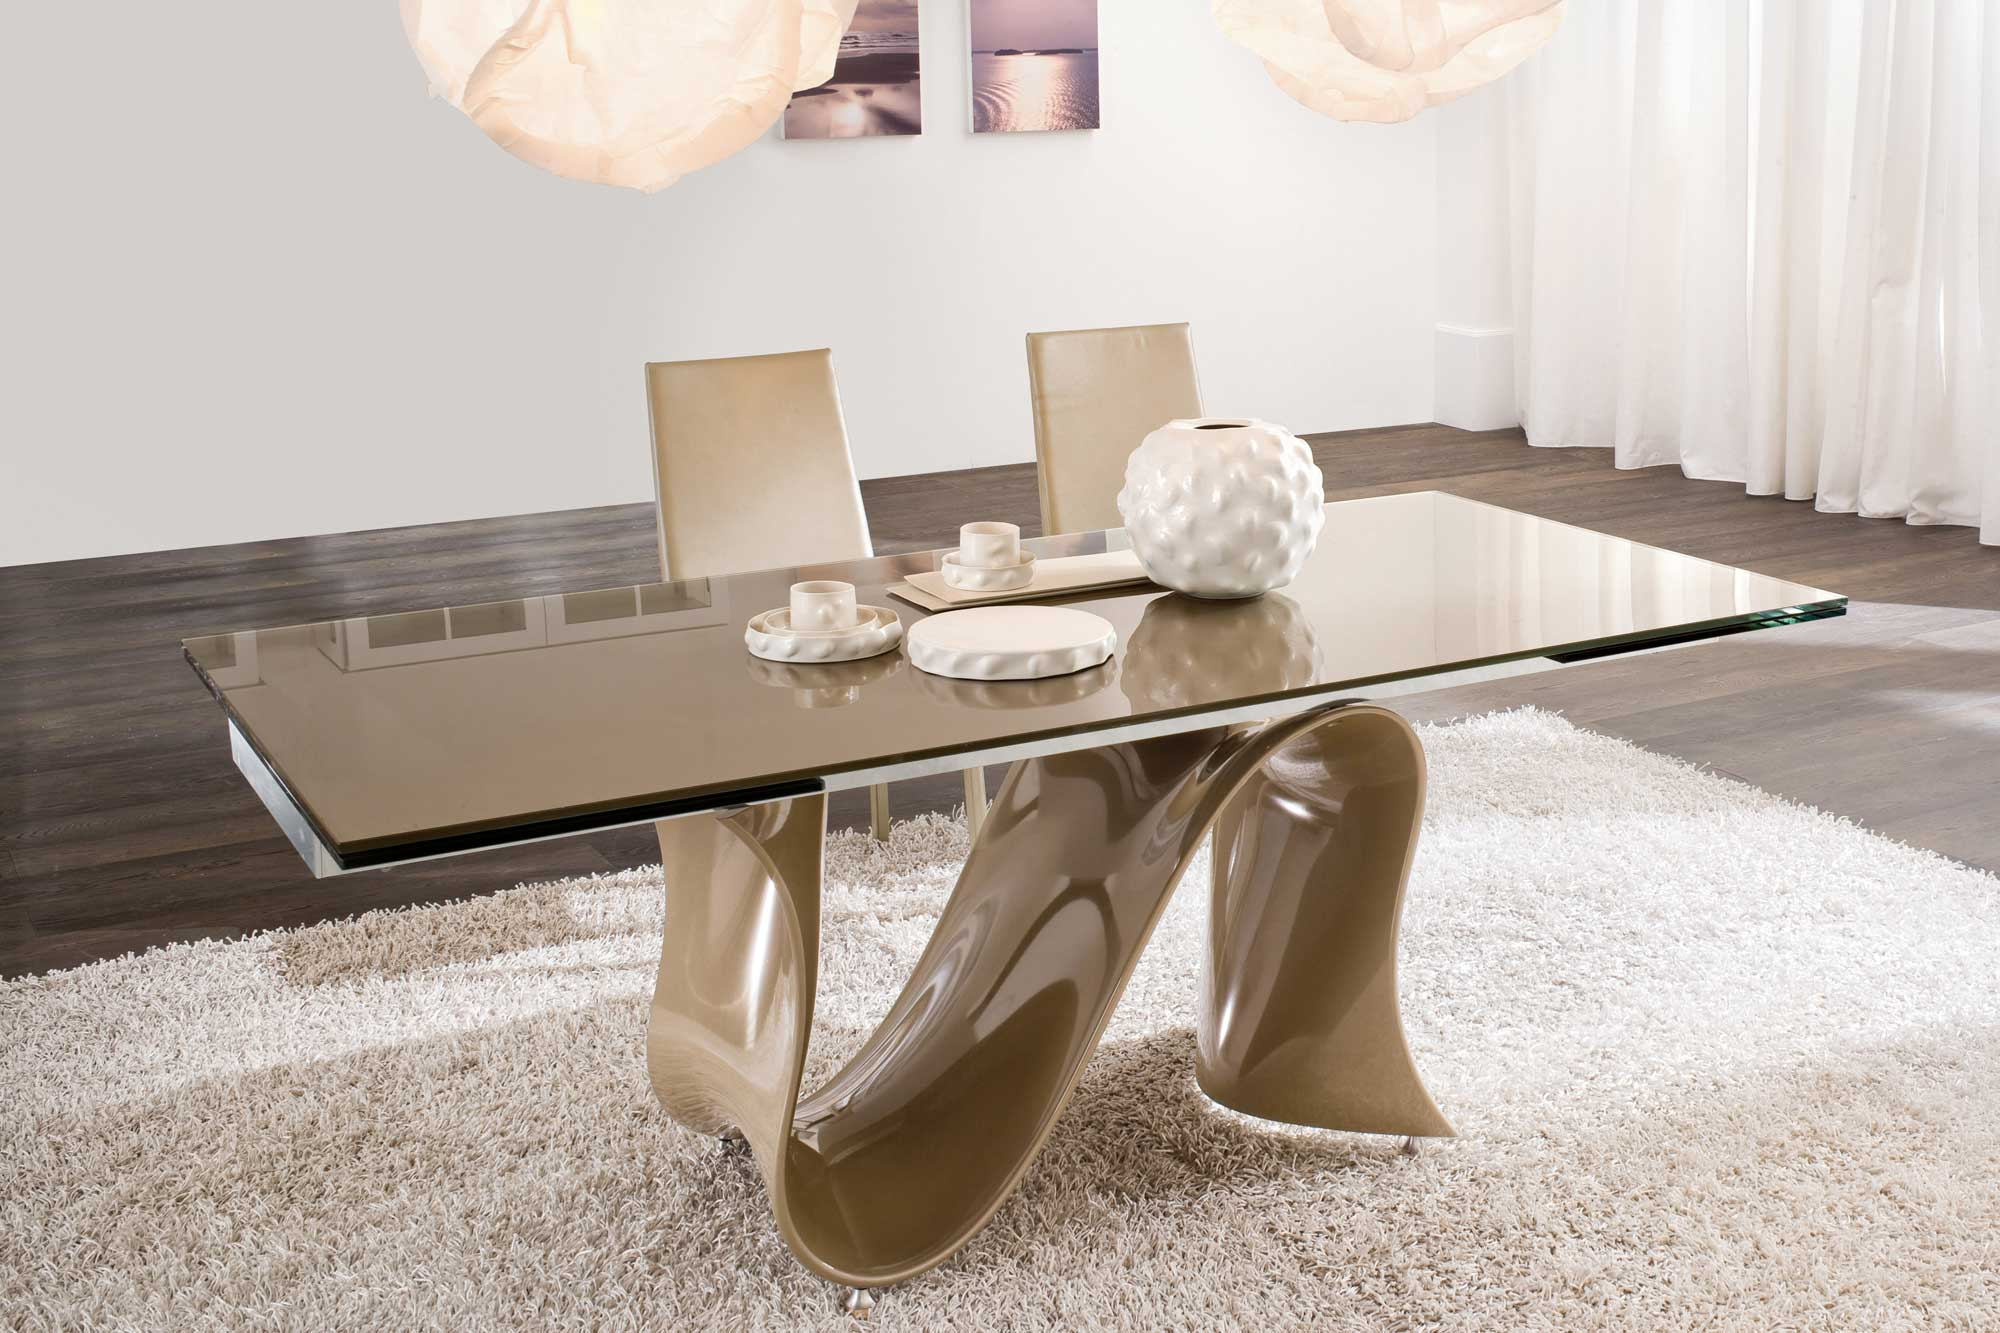 Reflective Surface Of Cream Modern Dining Table With Cream Chairs On Carpet  Rug Near Hardwood Flooring